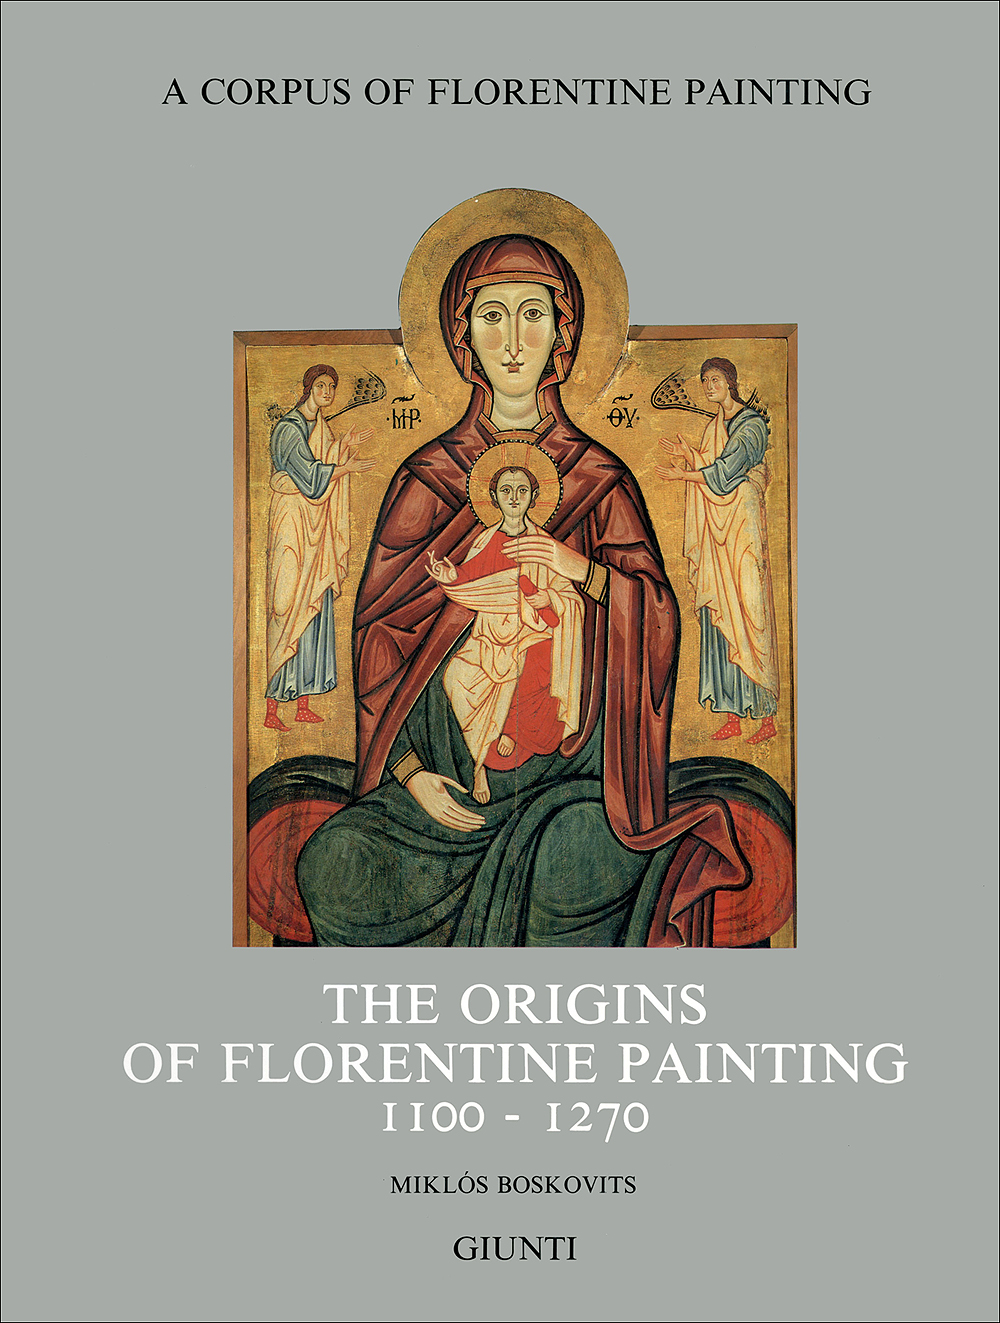 The origins of florentine painting (1100-1270) (in inglese)